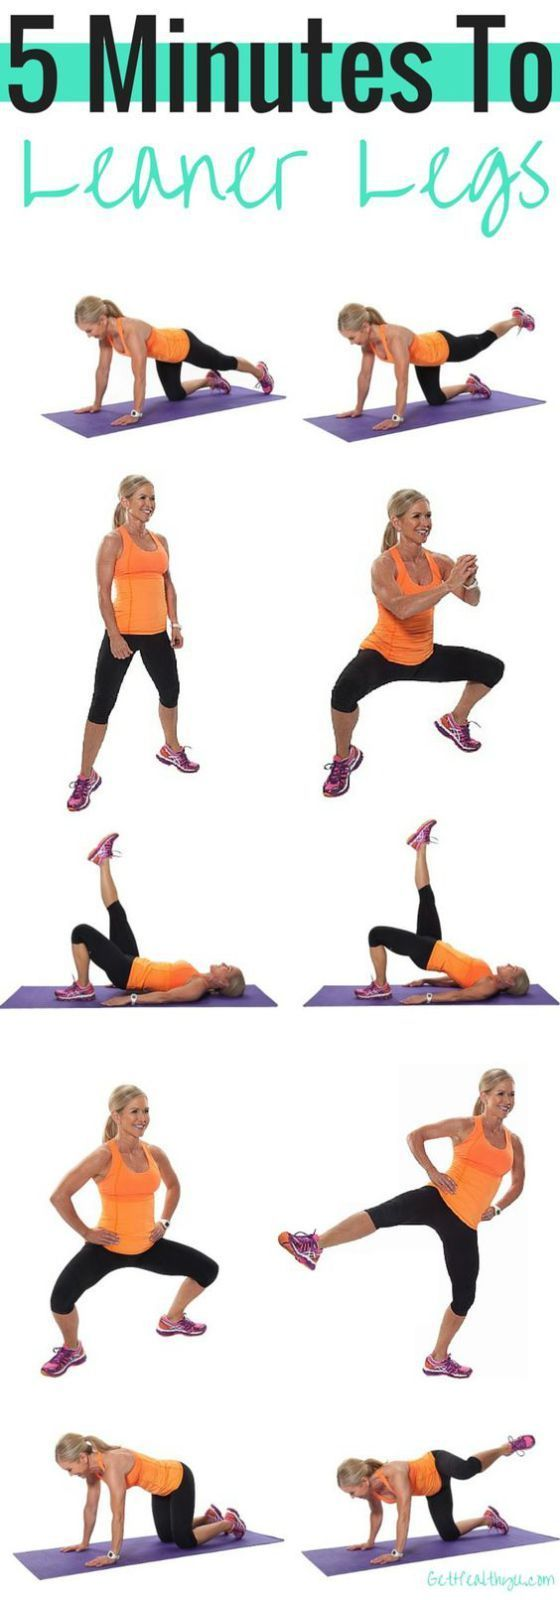 Looking for a great leg and inner thigh workout? Try these workouts for toned and lean legs! These quick workouts take 5 minutes of your time and you can do them daily, whenever you have the time. This amazing list includes 5-minute ab workouts for flat b